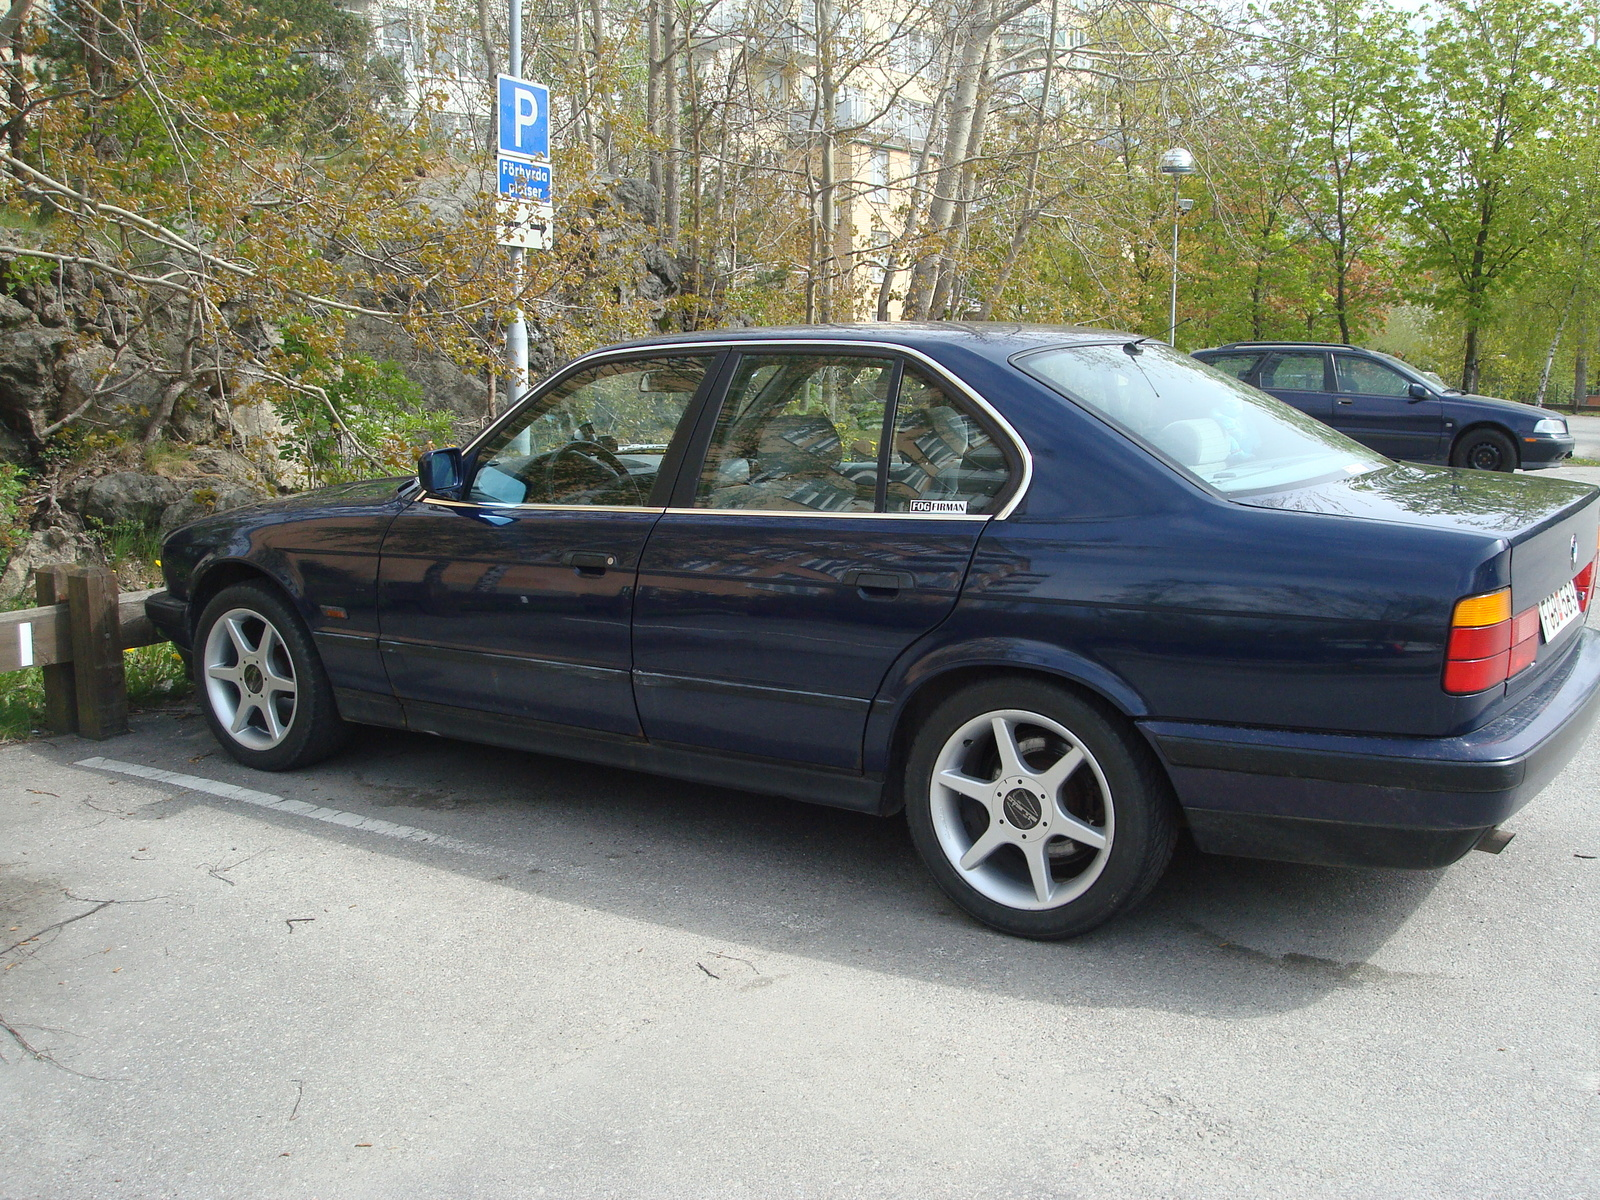 1992 BMW 518 518i picture. 0 pictures · 1 video · 3 reviews